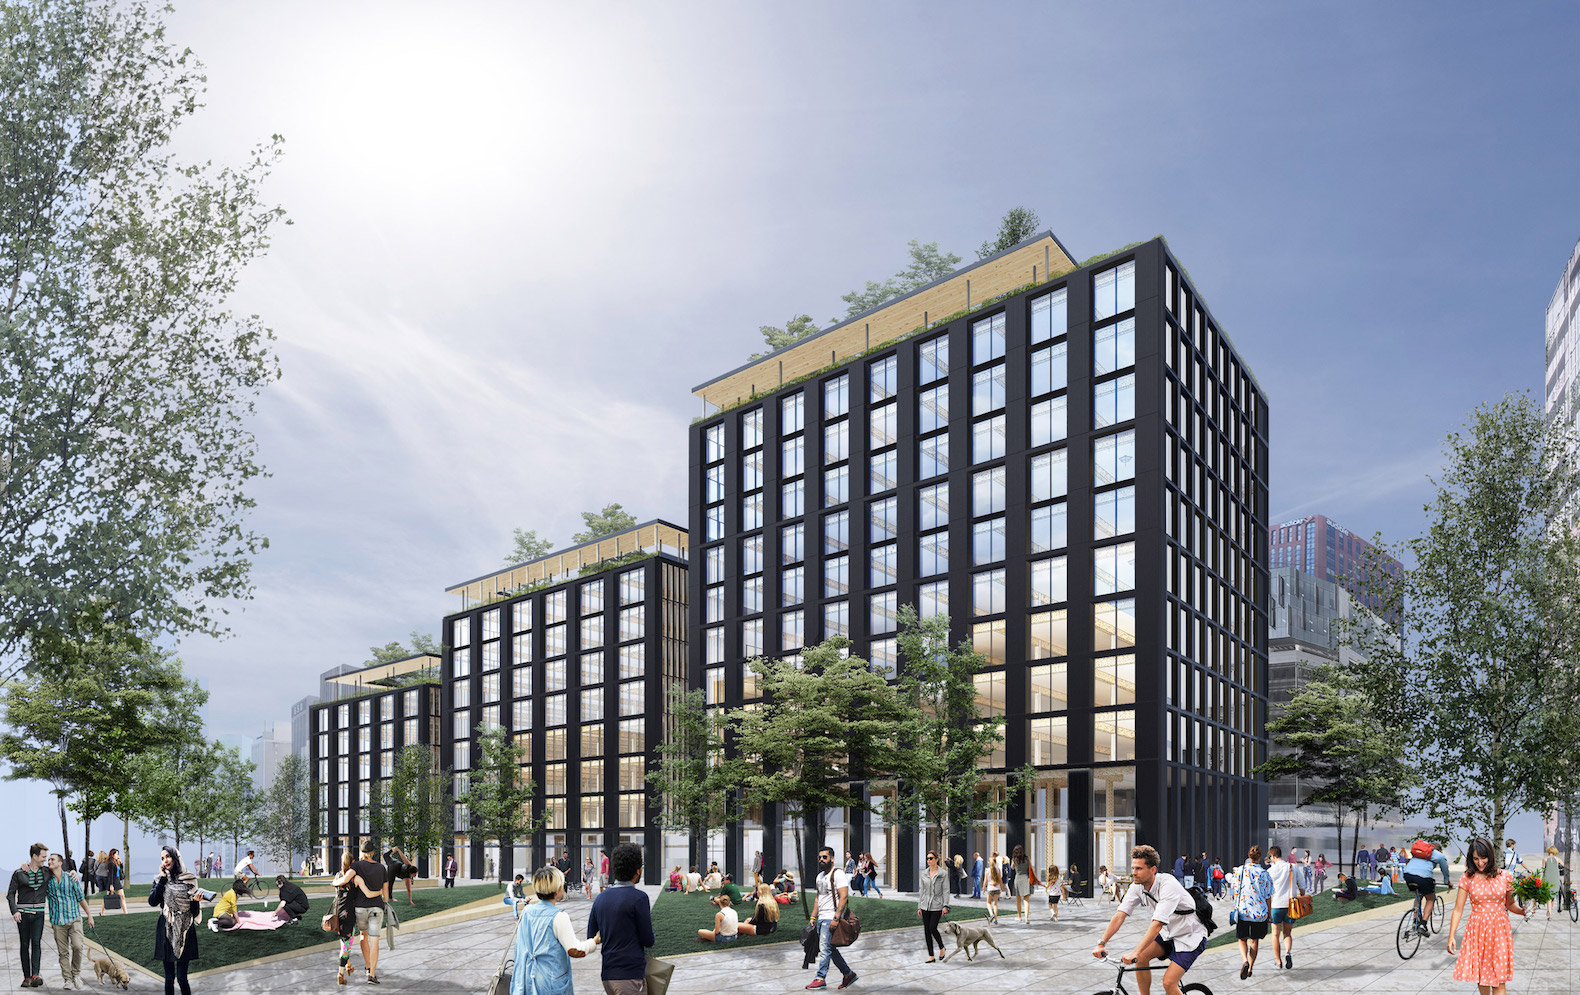 Lotus is planning an 11-storey wooden office building to front Riverfront Square, the developer's 11.8-acre masterplan in Newark, New Jersey.